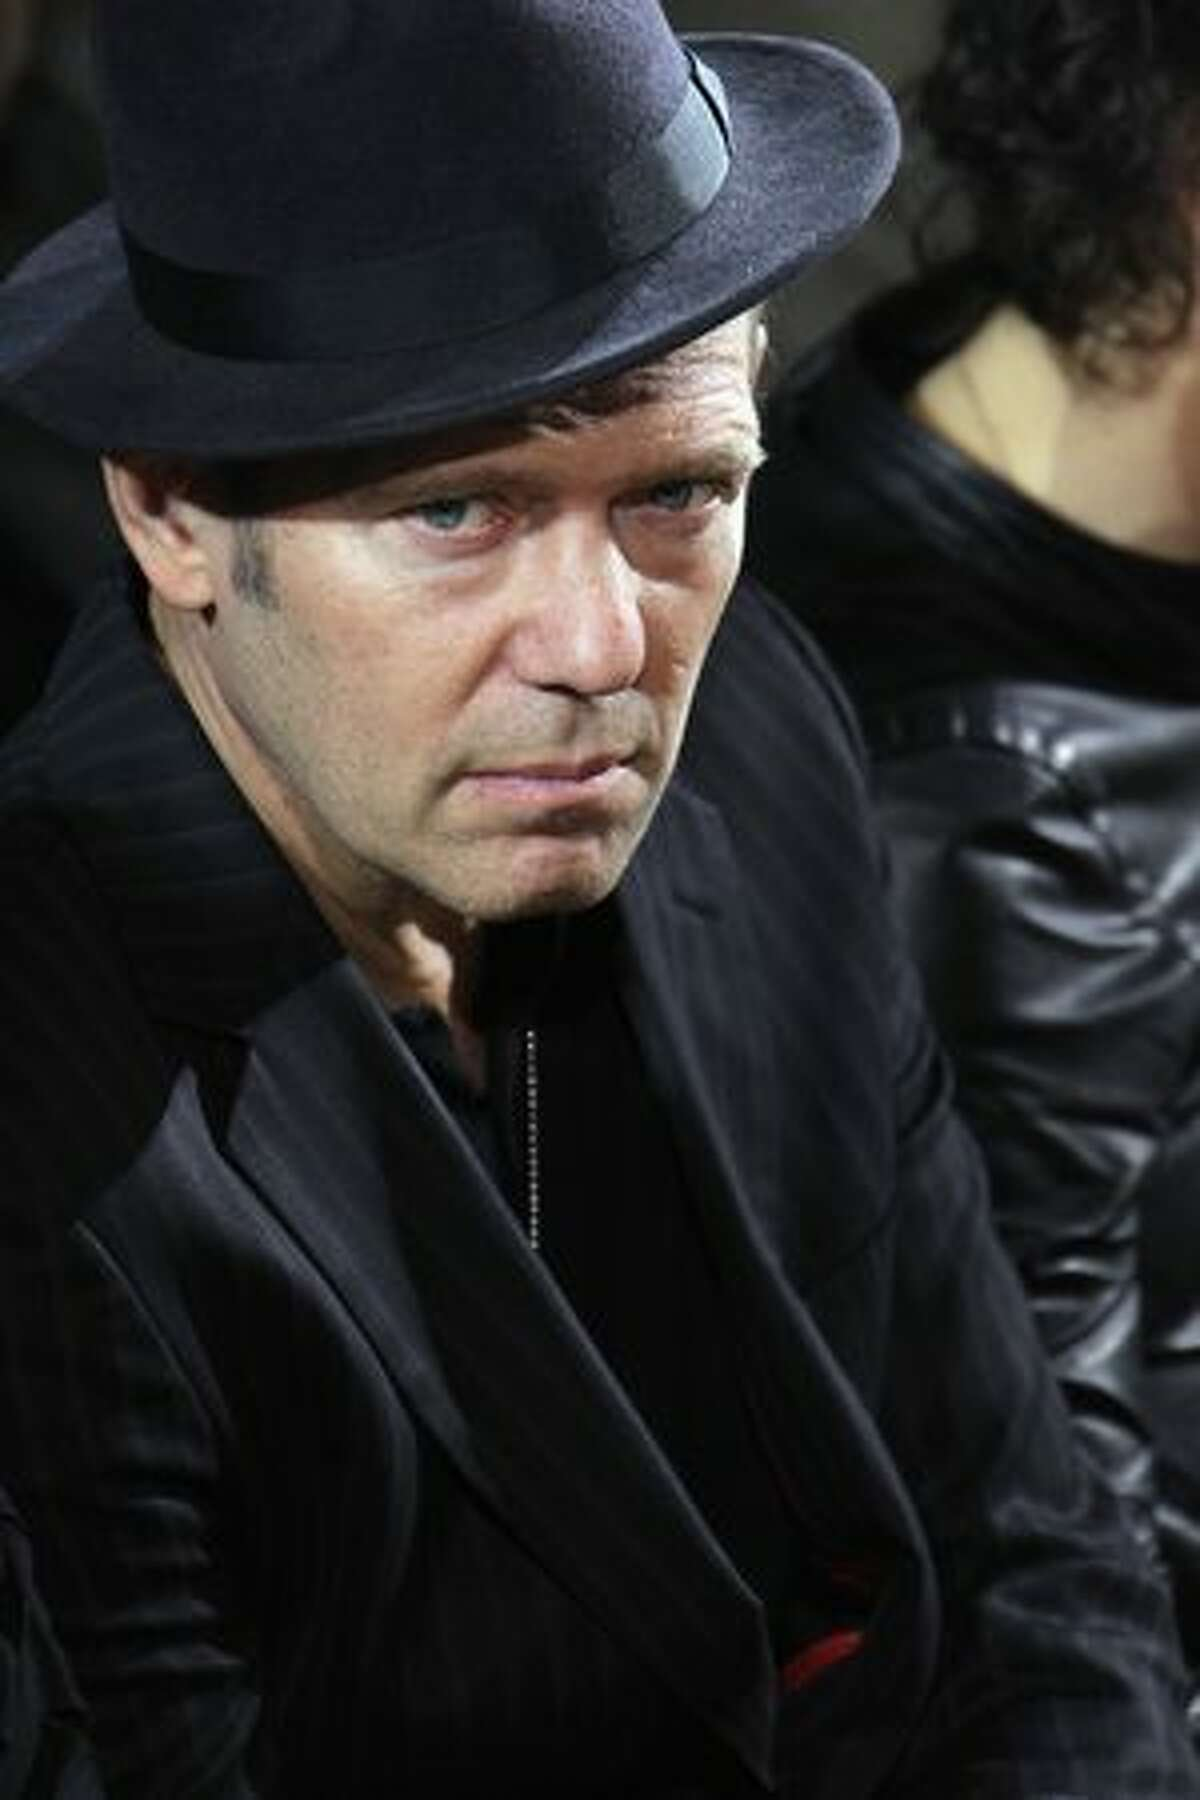 'The Clash' bassist Paul Simonon attends the Yves Saint Laurent fashion show as part of Paris Menswear Fashion Week Fall/Winter 2011-2012 at Artemis in Paris, France.